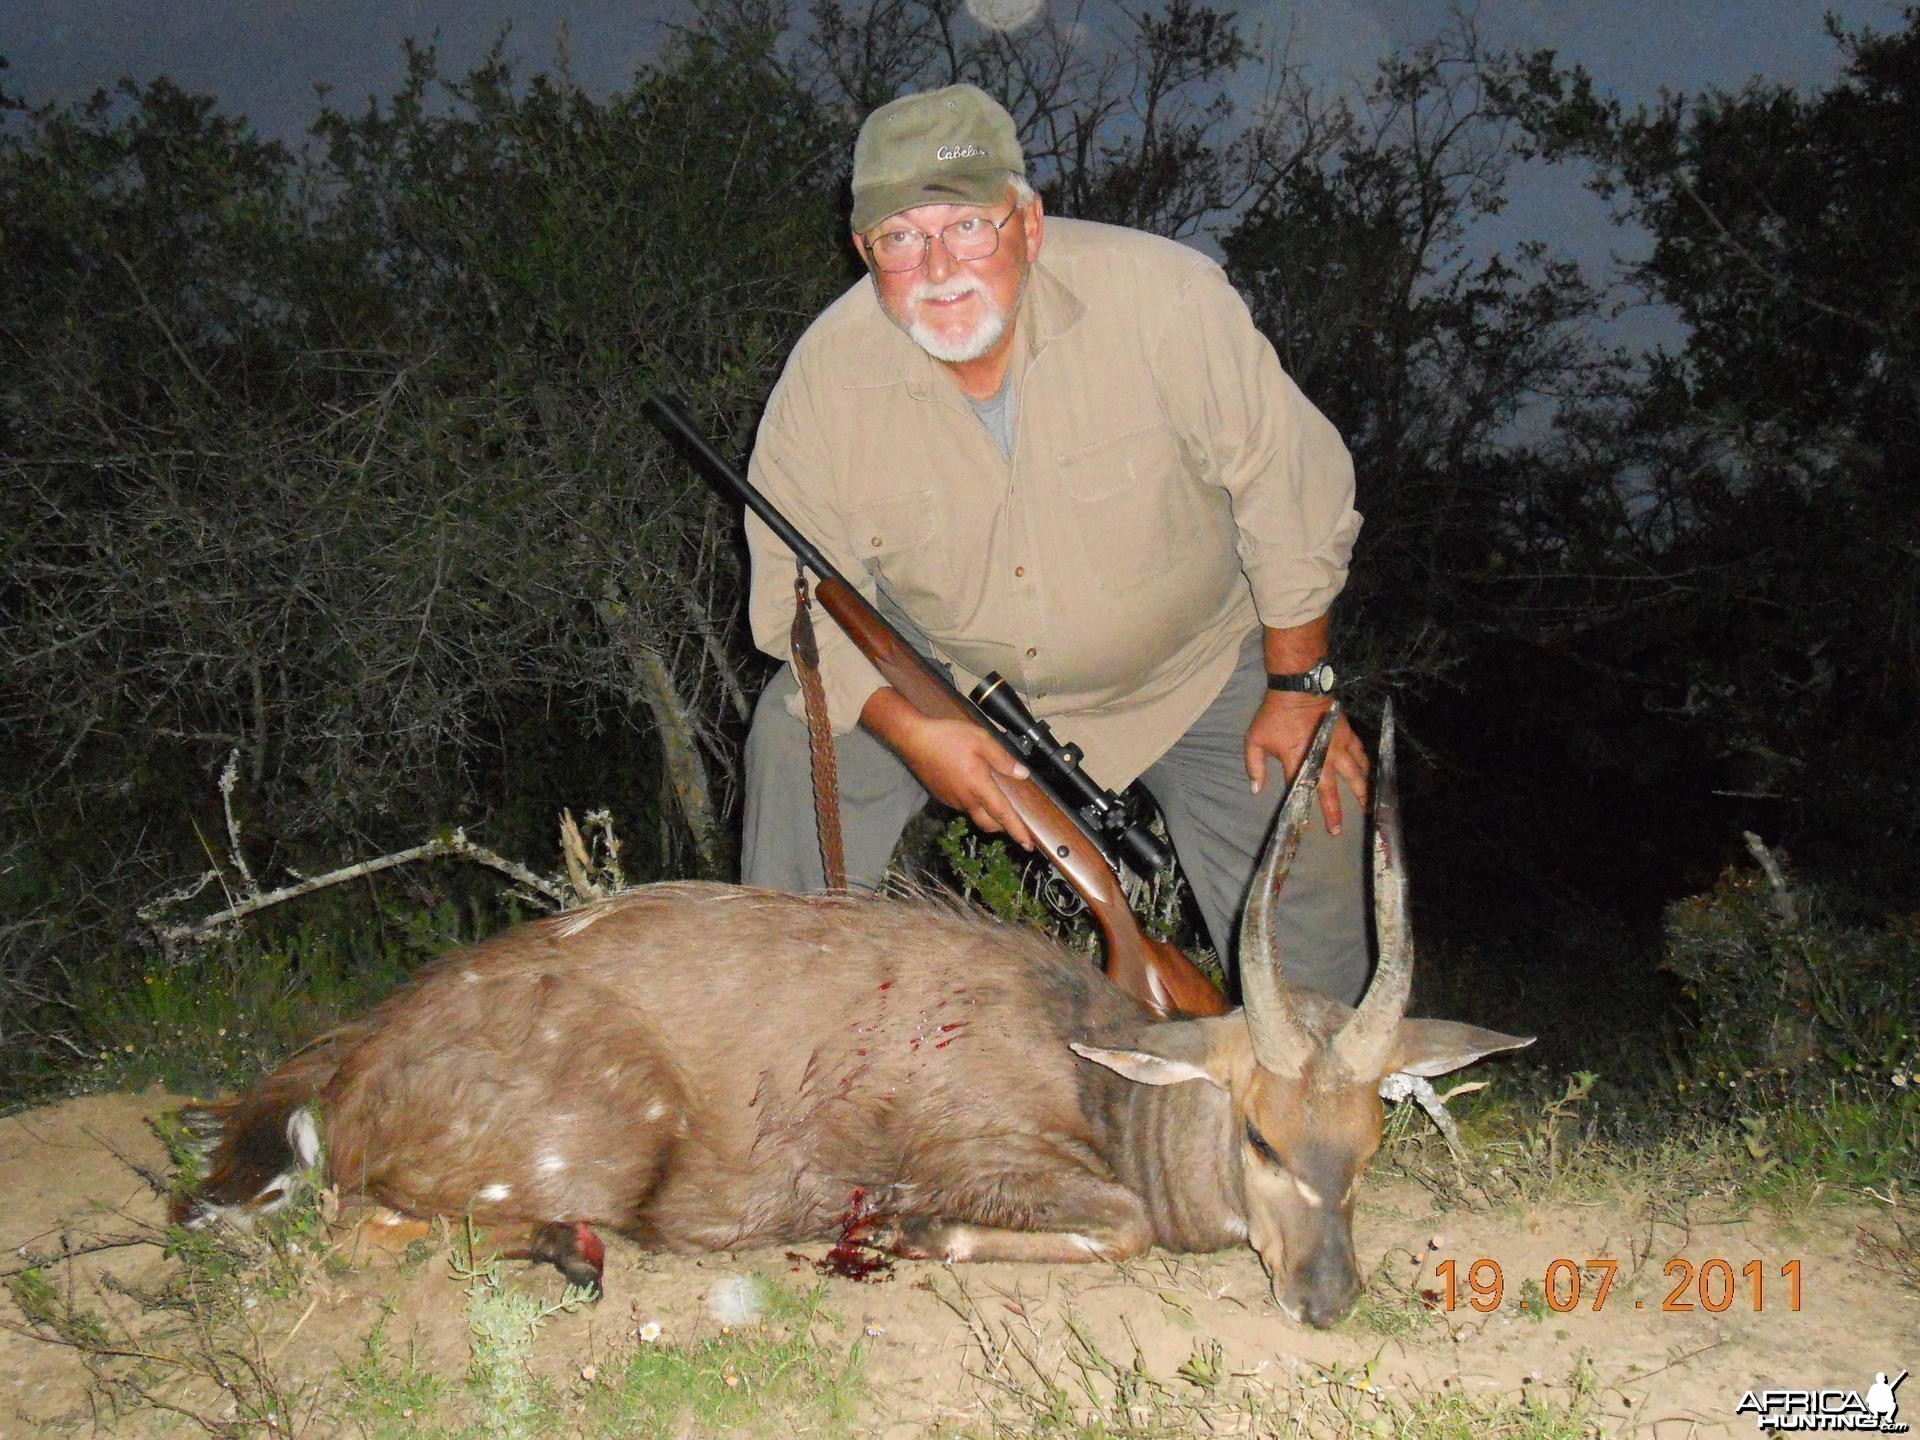 Bushbuck hunt in South Africa